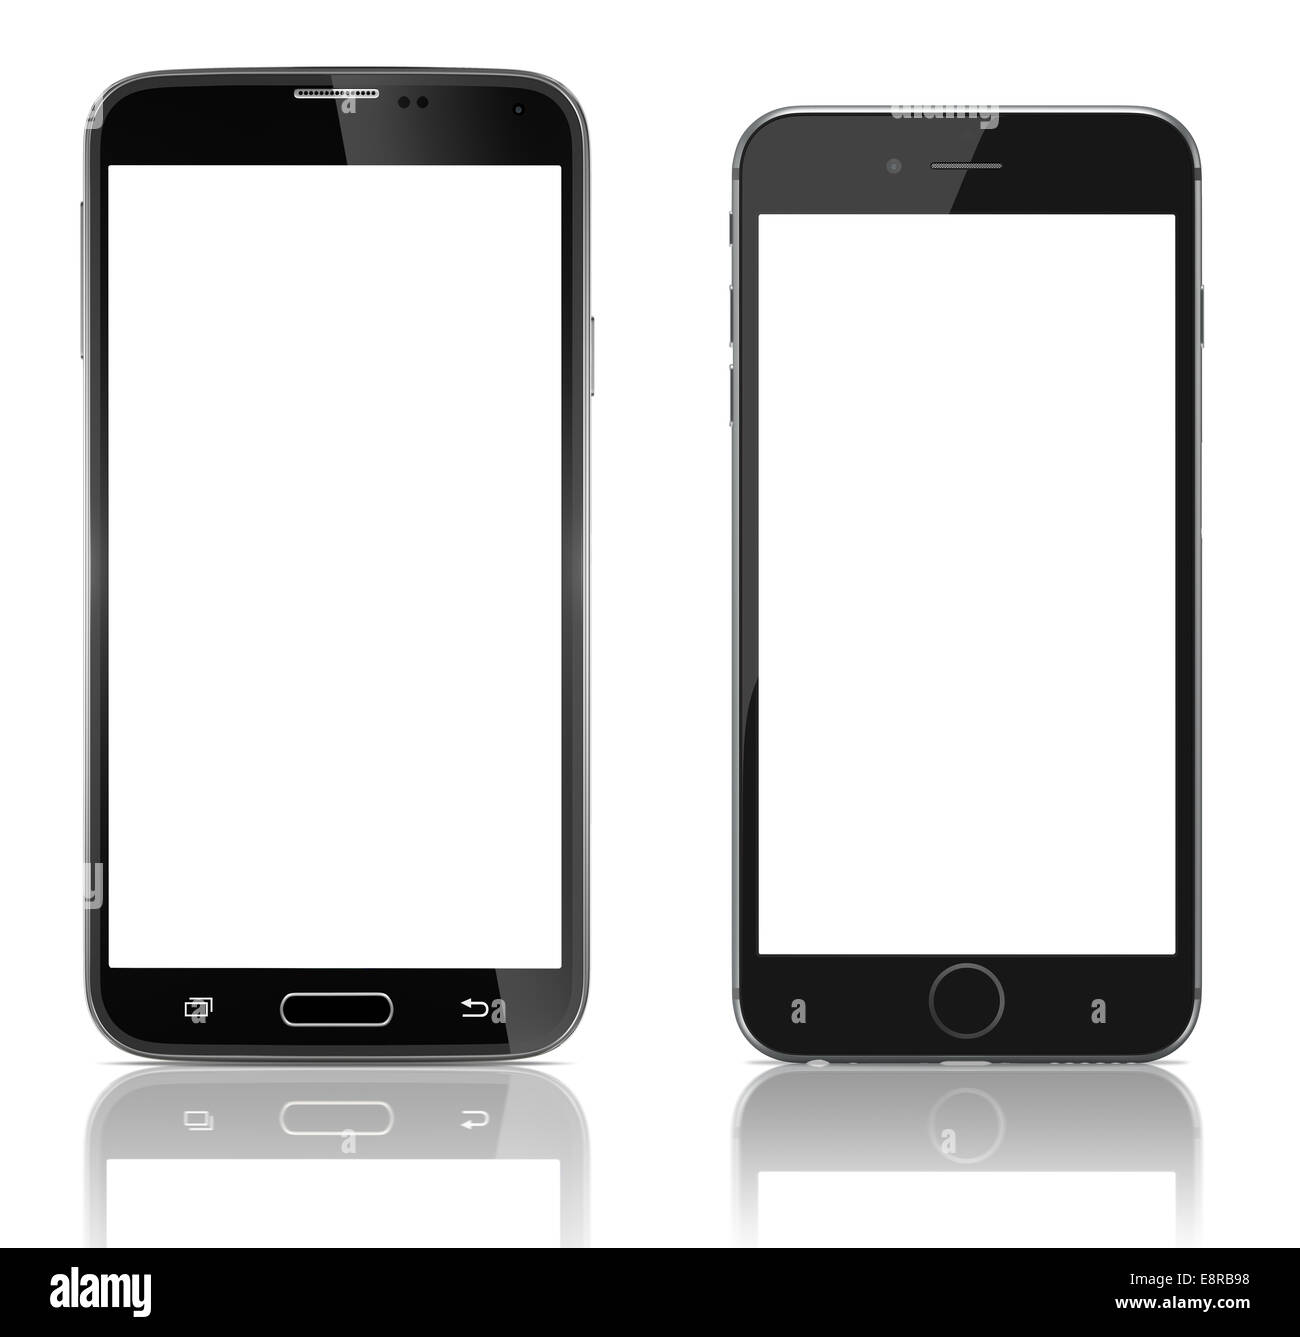 Comparison two new smartphones side by side. new Smartphone with blank screen on white background - Stock Image